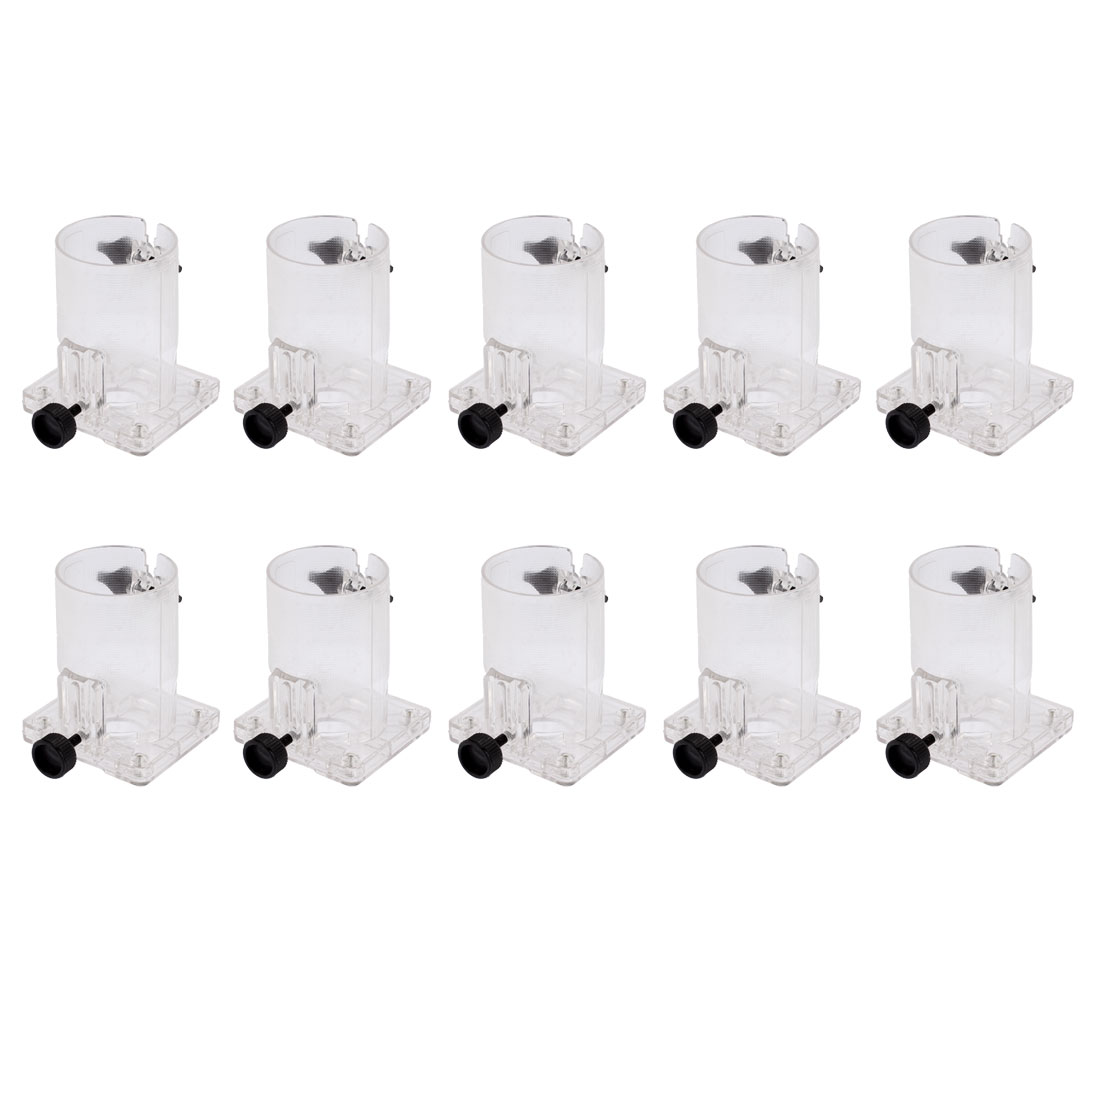 10 Pcs 7cm Cylinder Dia Hard Plastic Base Assembly for Makita 3703 Trimmer